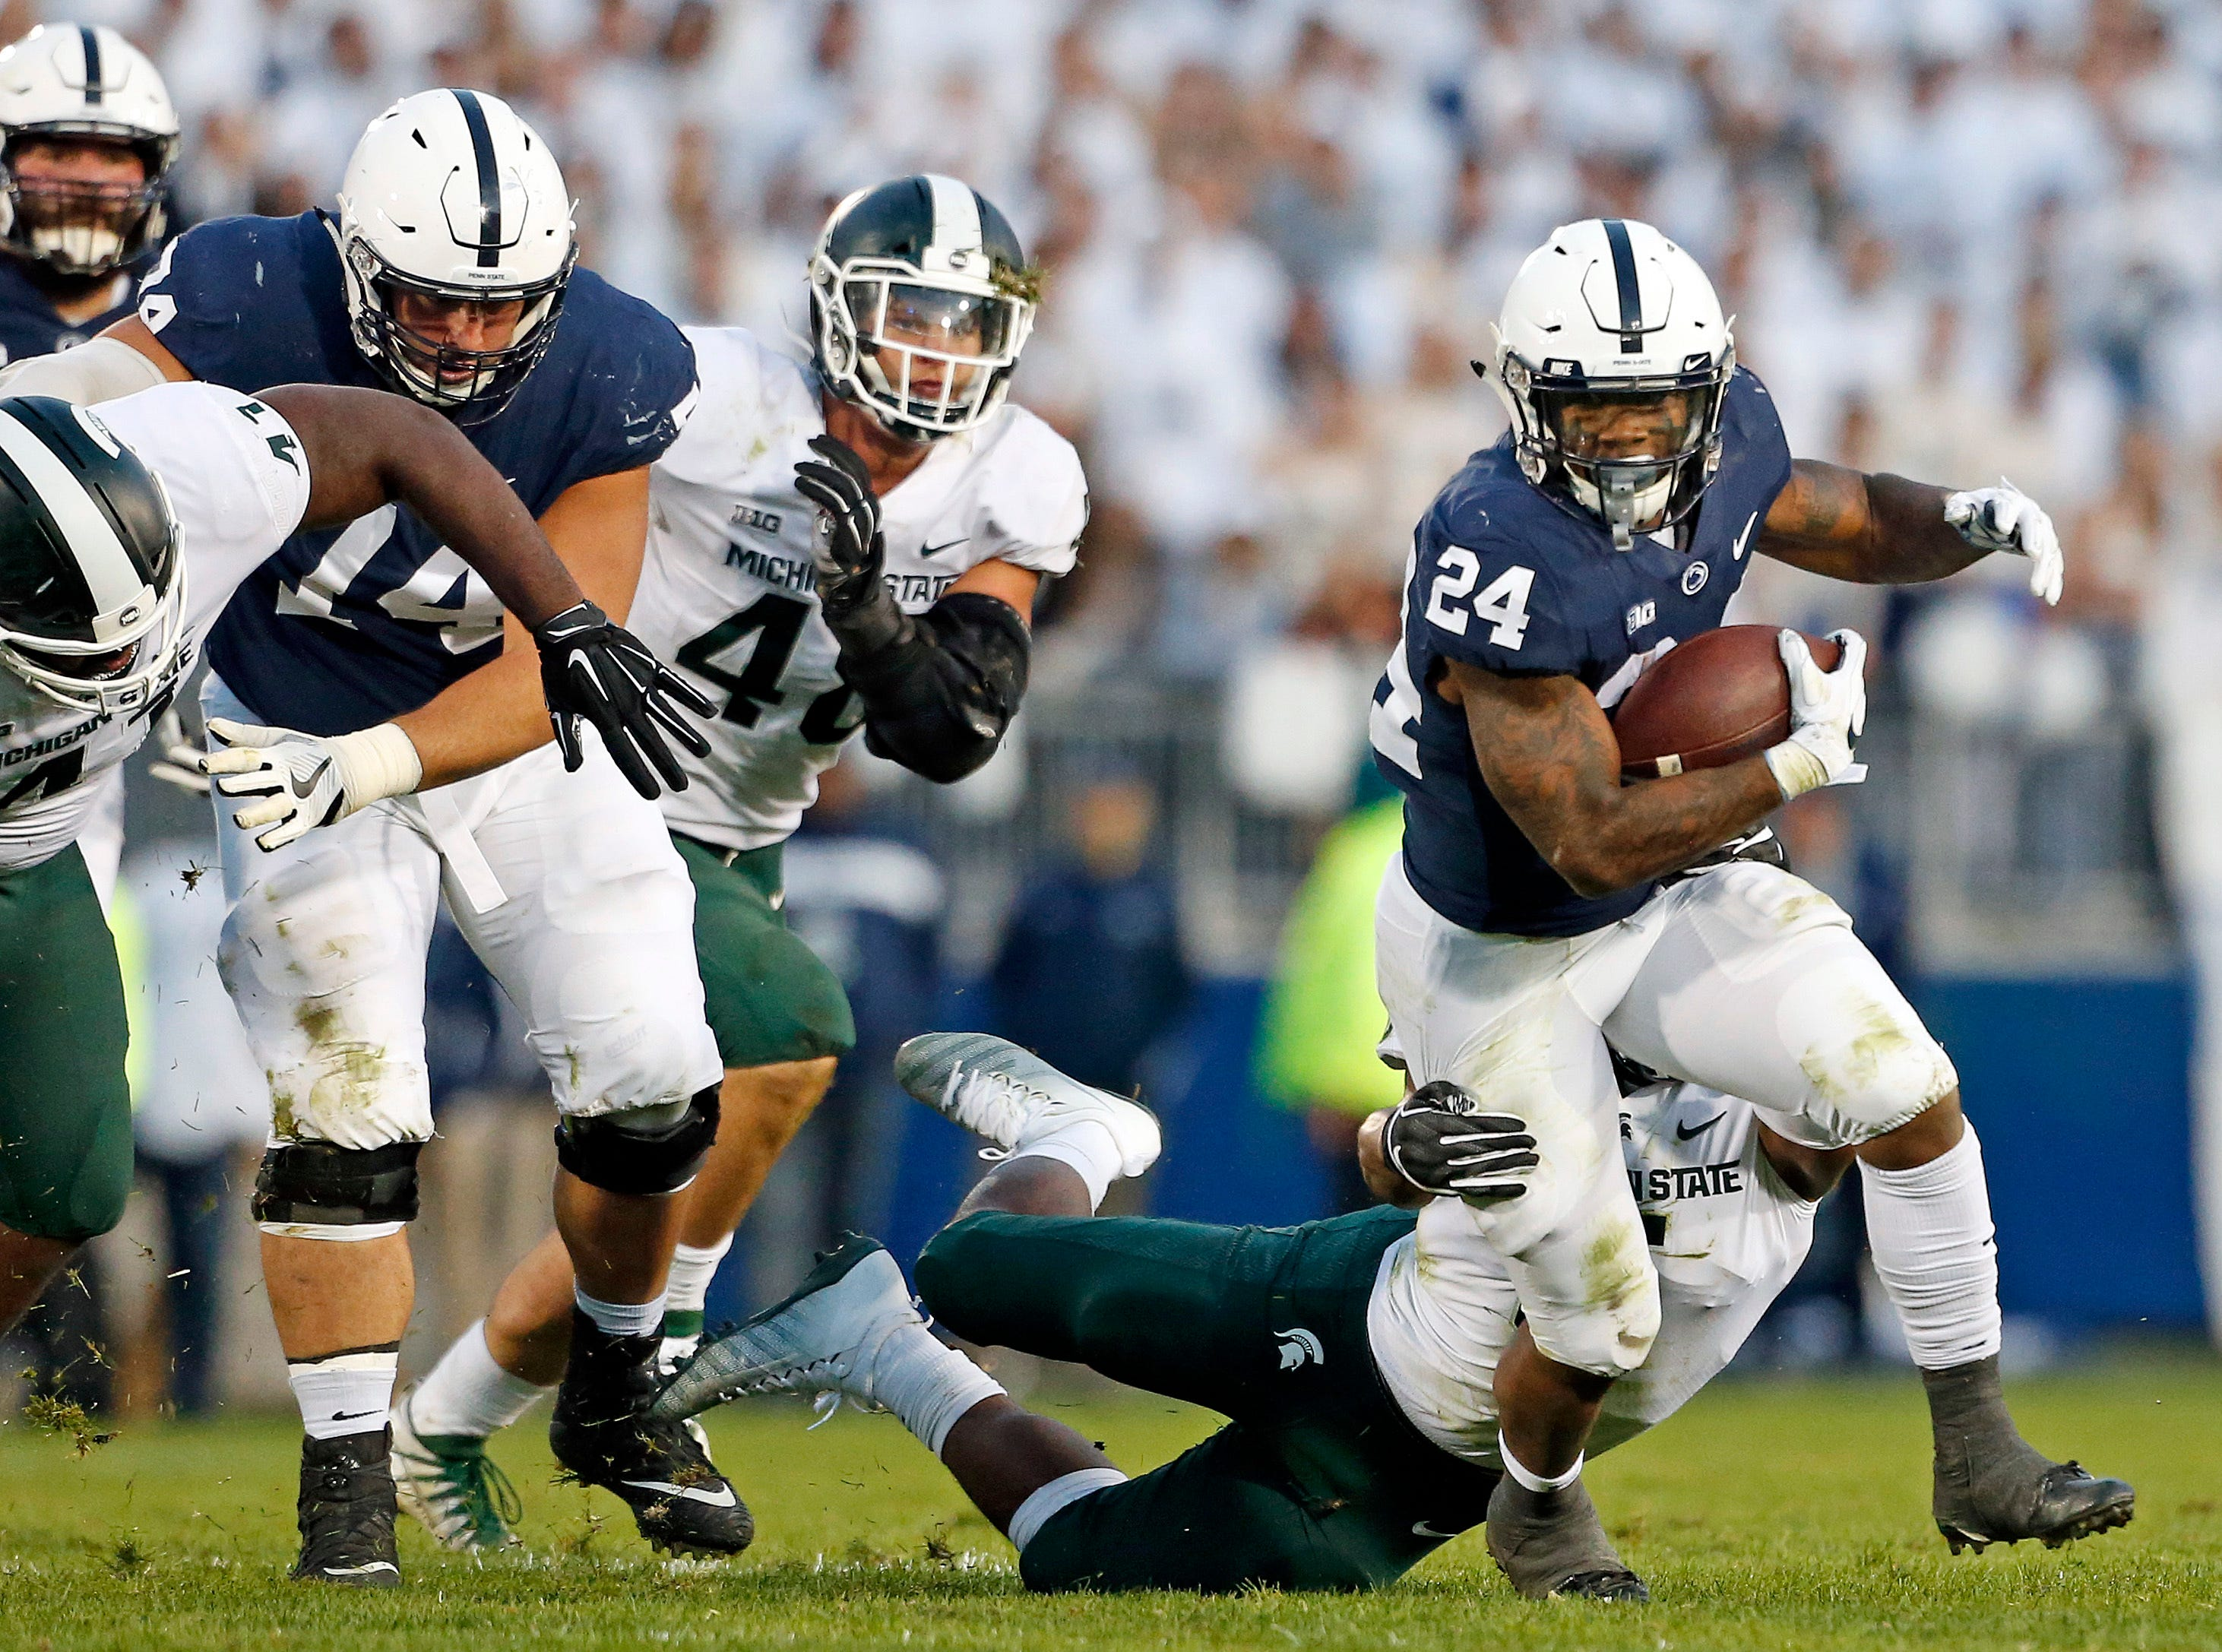 Penn State's Miles Sanders (24) runs the ball against Michigan State during the second half of an NCAA college football game in State College, Pa., Saturday, Oct. 13, 2018.